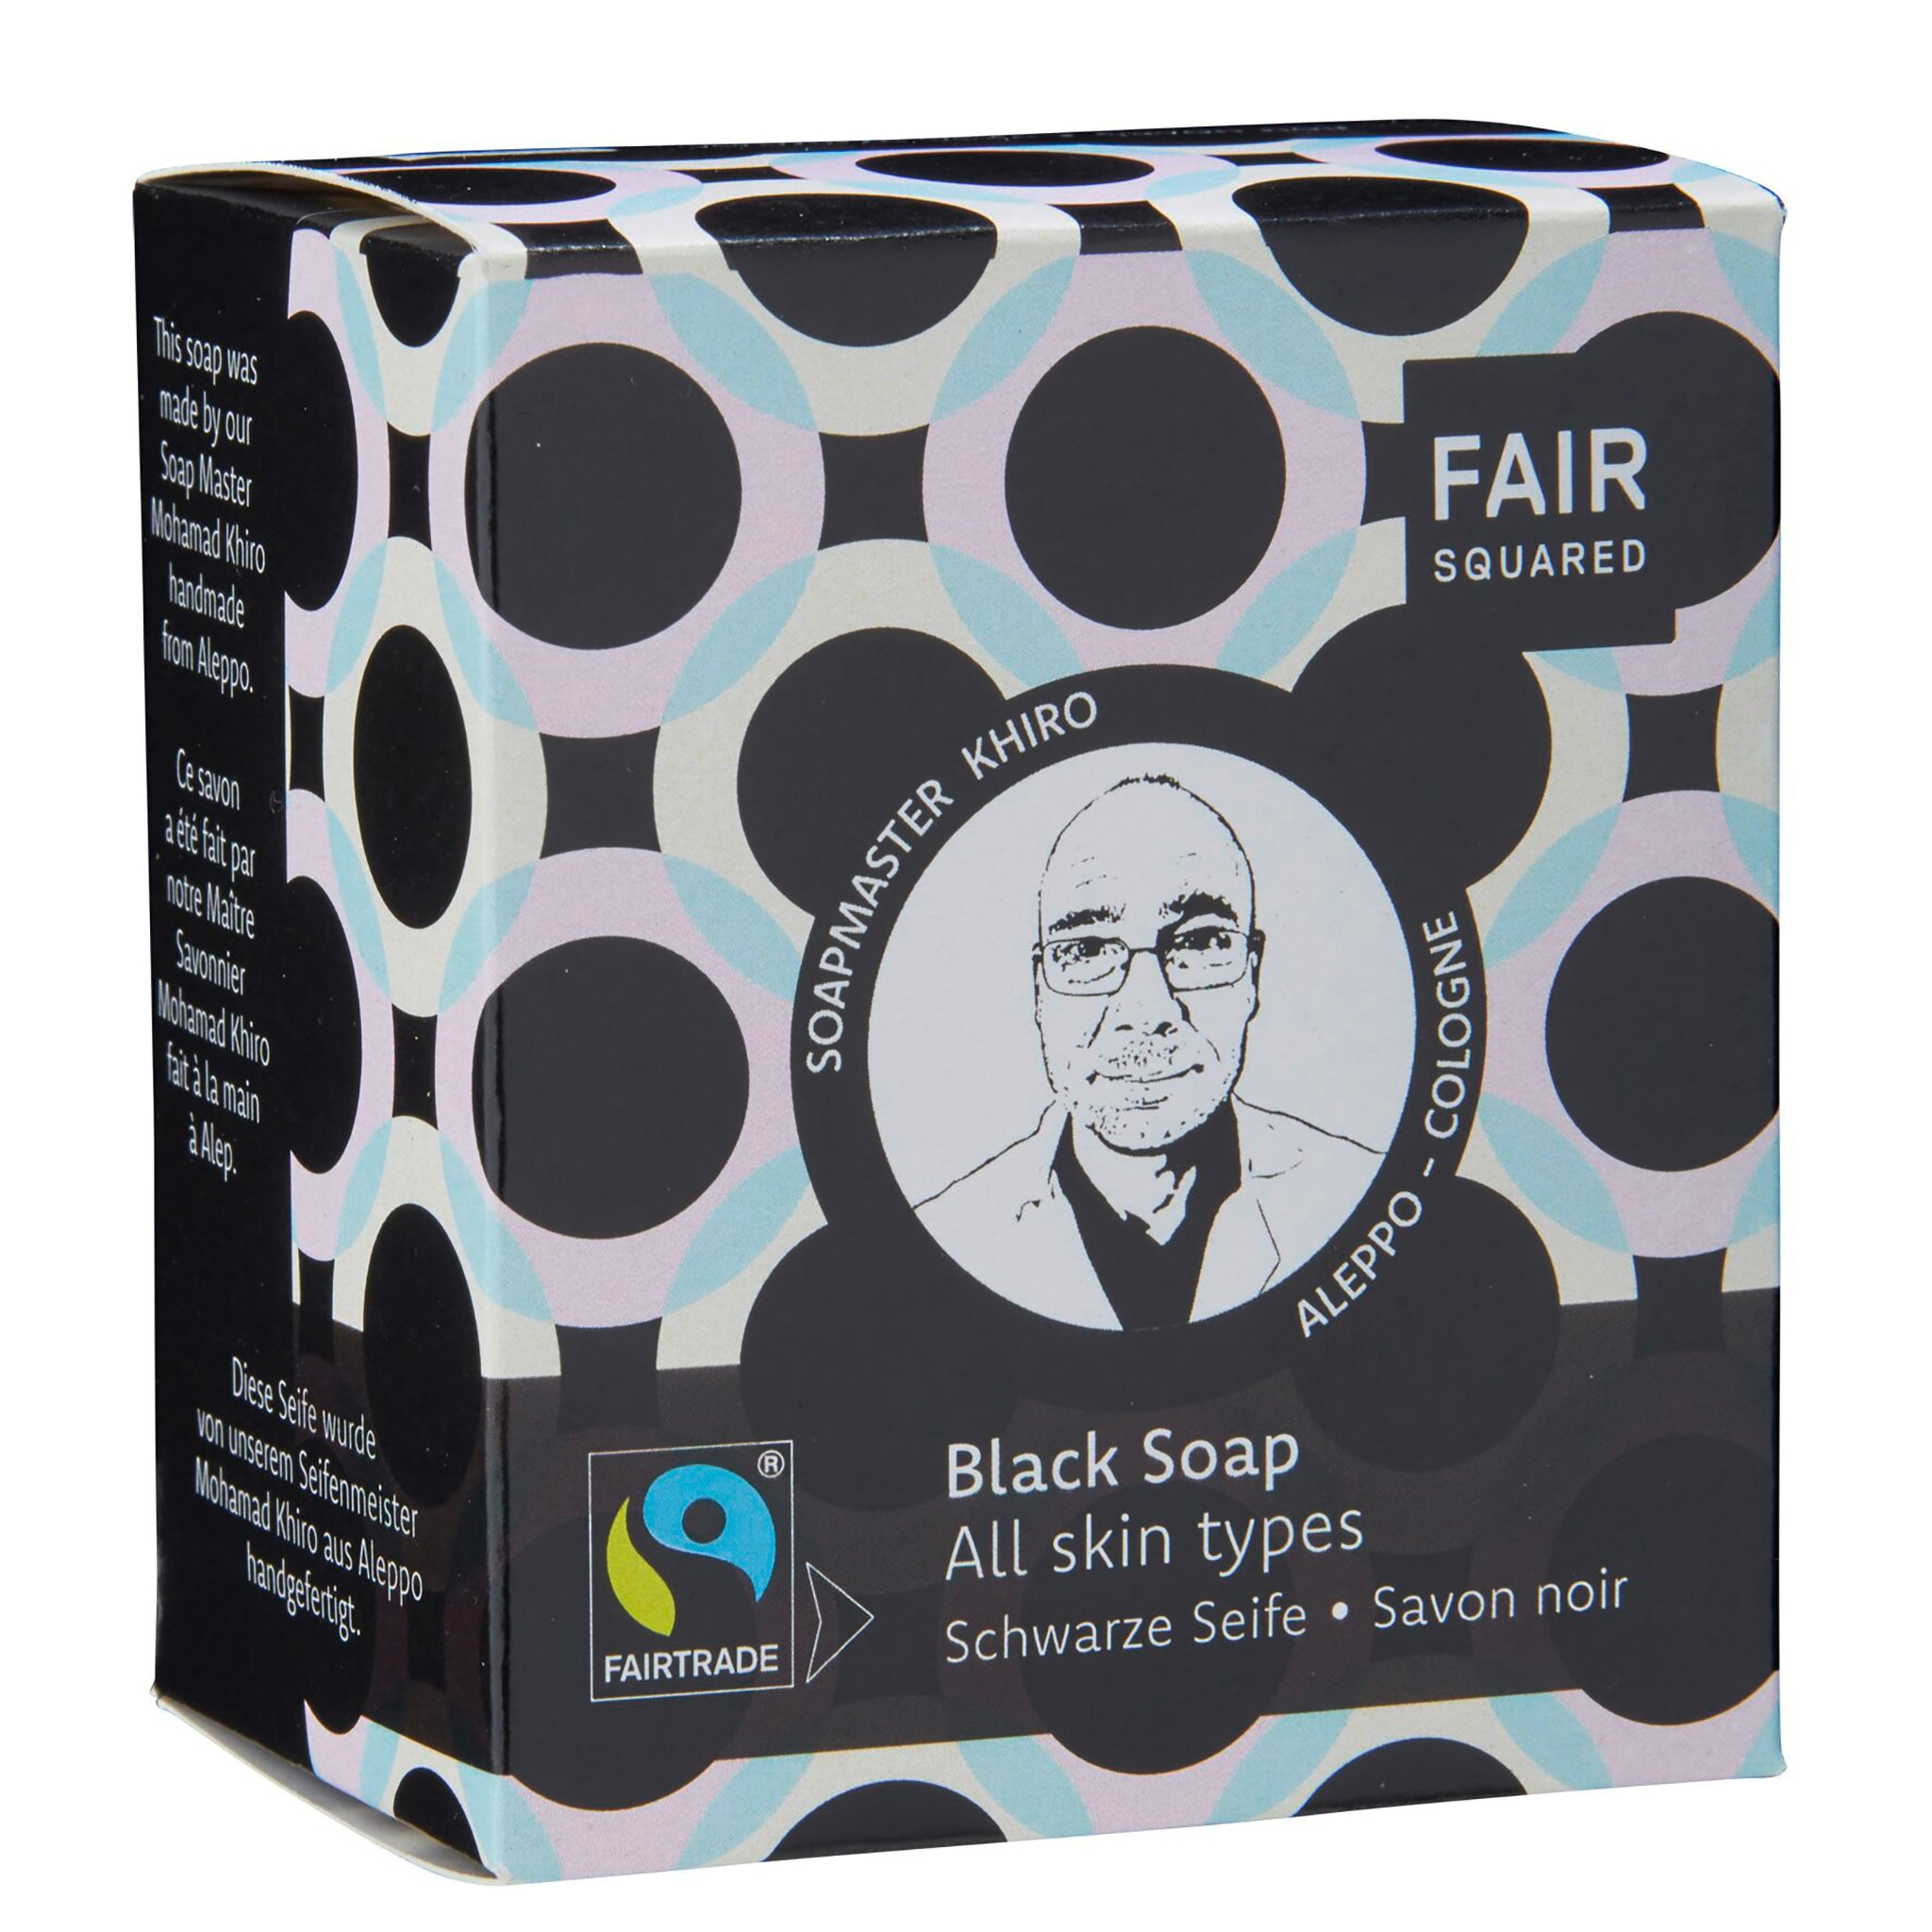 Facial Black Soap with Cotton Soap Bag - For All Skin Types